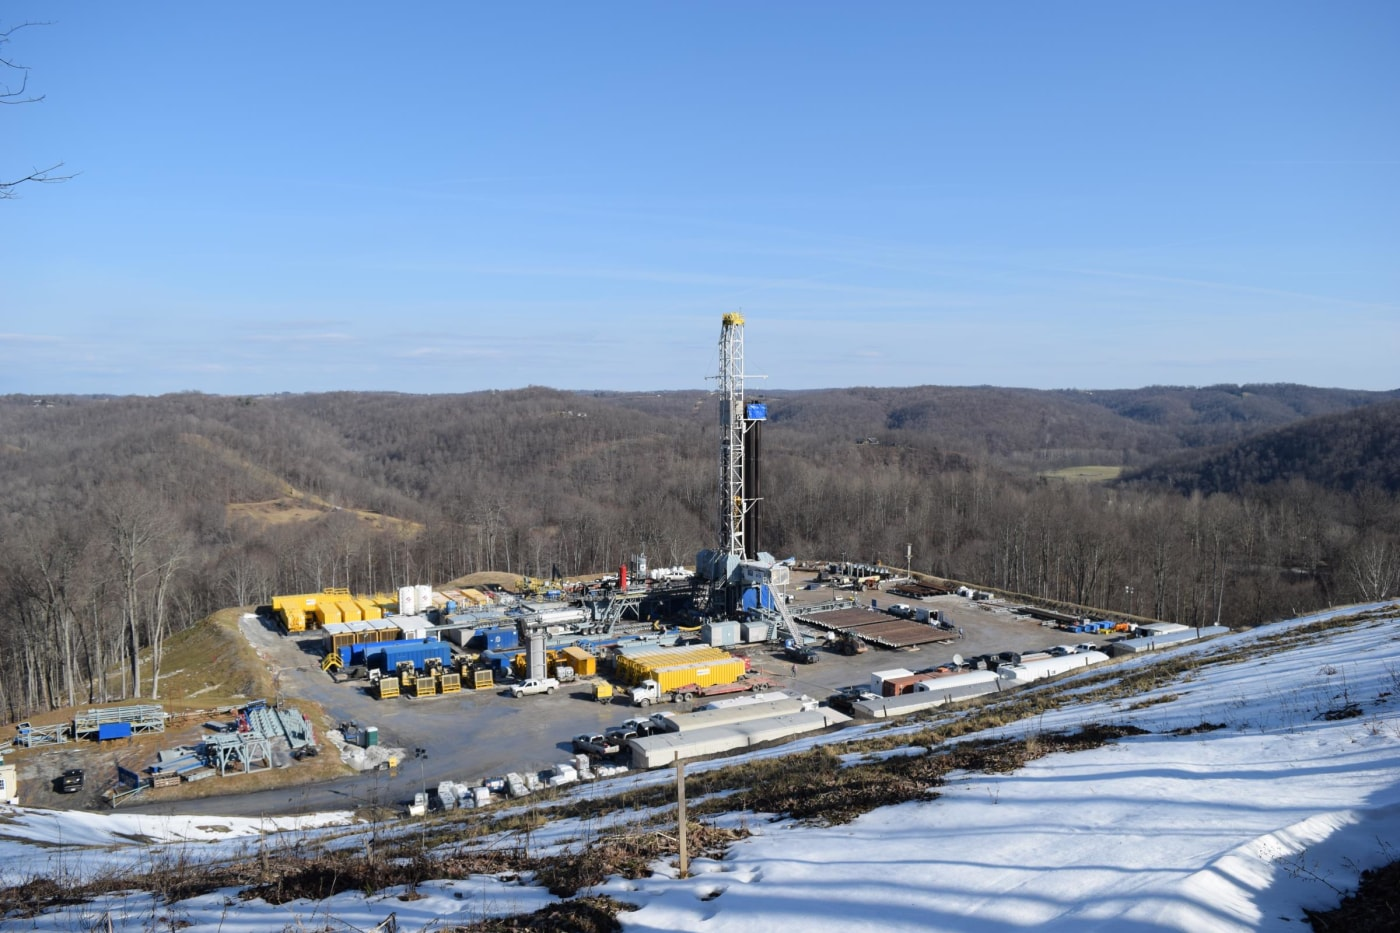 Natural gas well pad